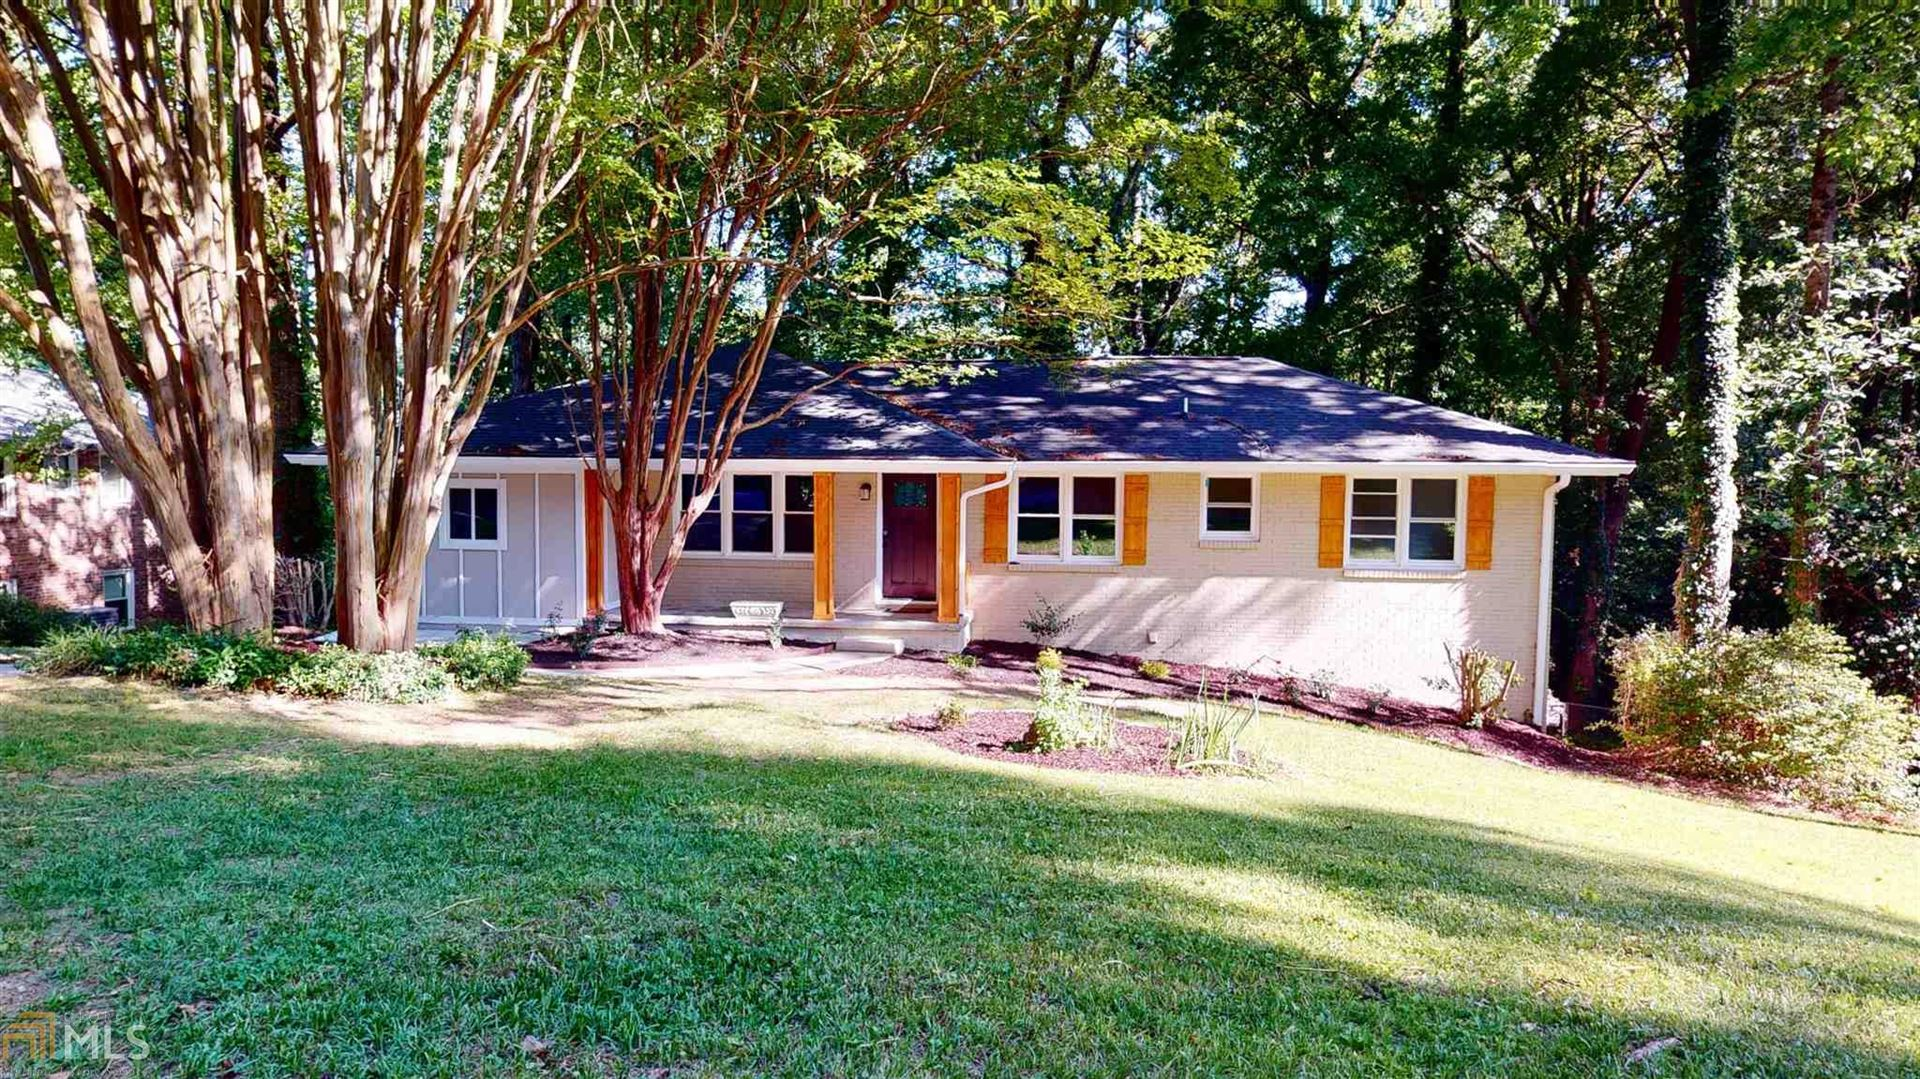 1773 Gardenside Ct, Brookhaven, GA 30319 - MLS#: 8849157